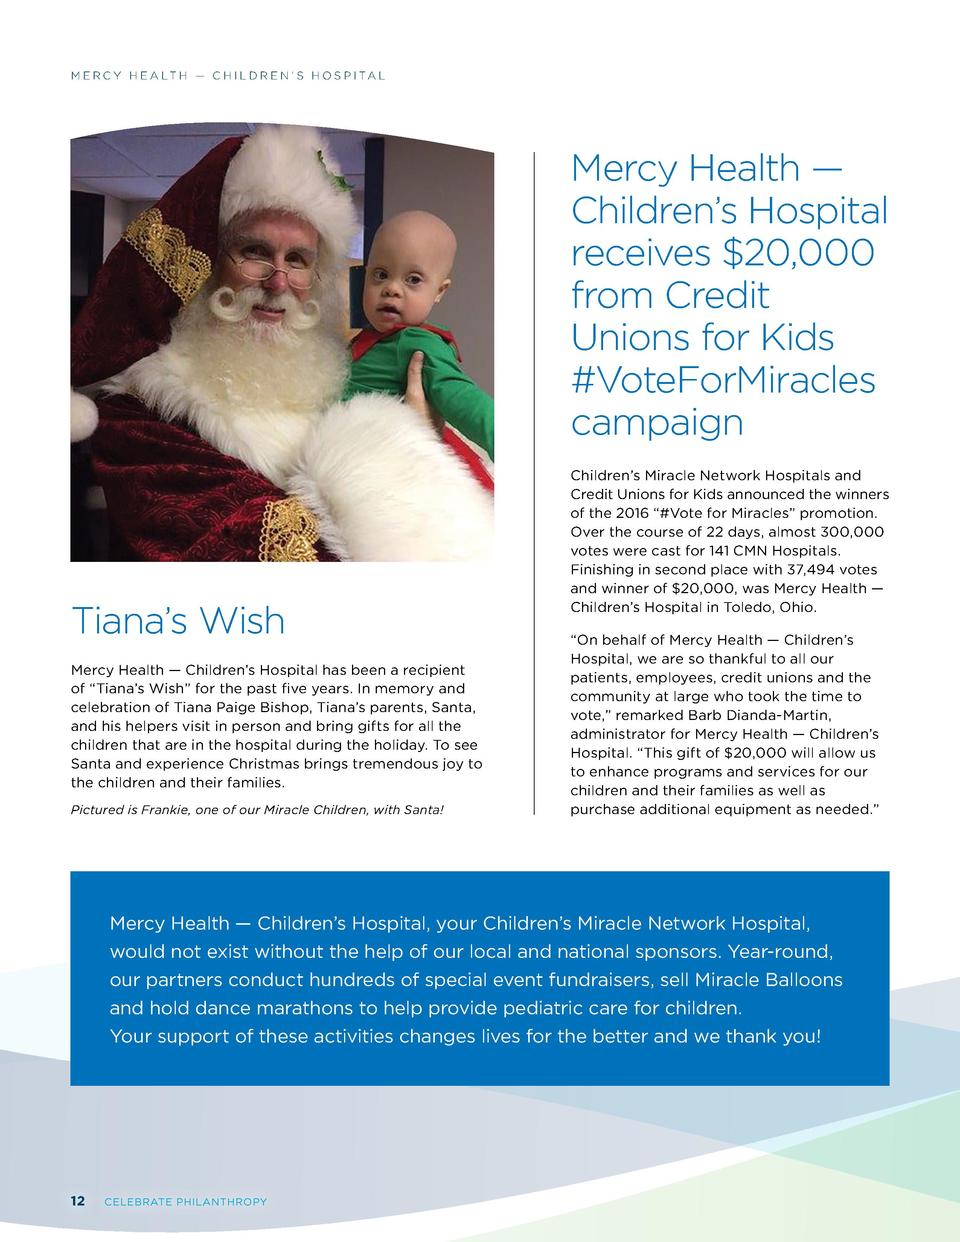 M E R C Y H E A LT H     C H I L D R E N     S H O S P I TA L  Mercy Health     Children   s Hospital receives  20,000 fro...